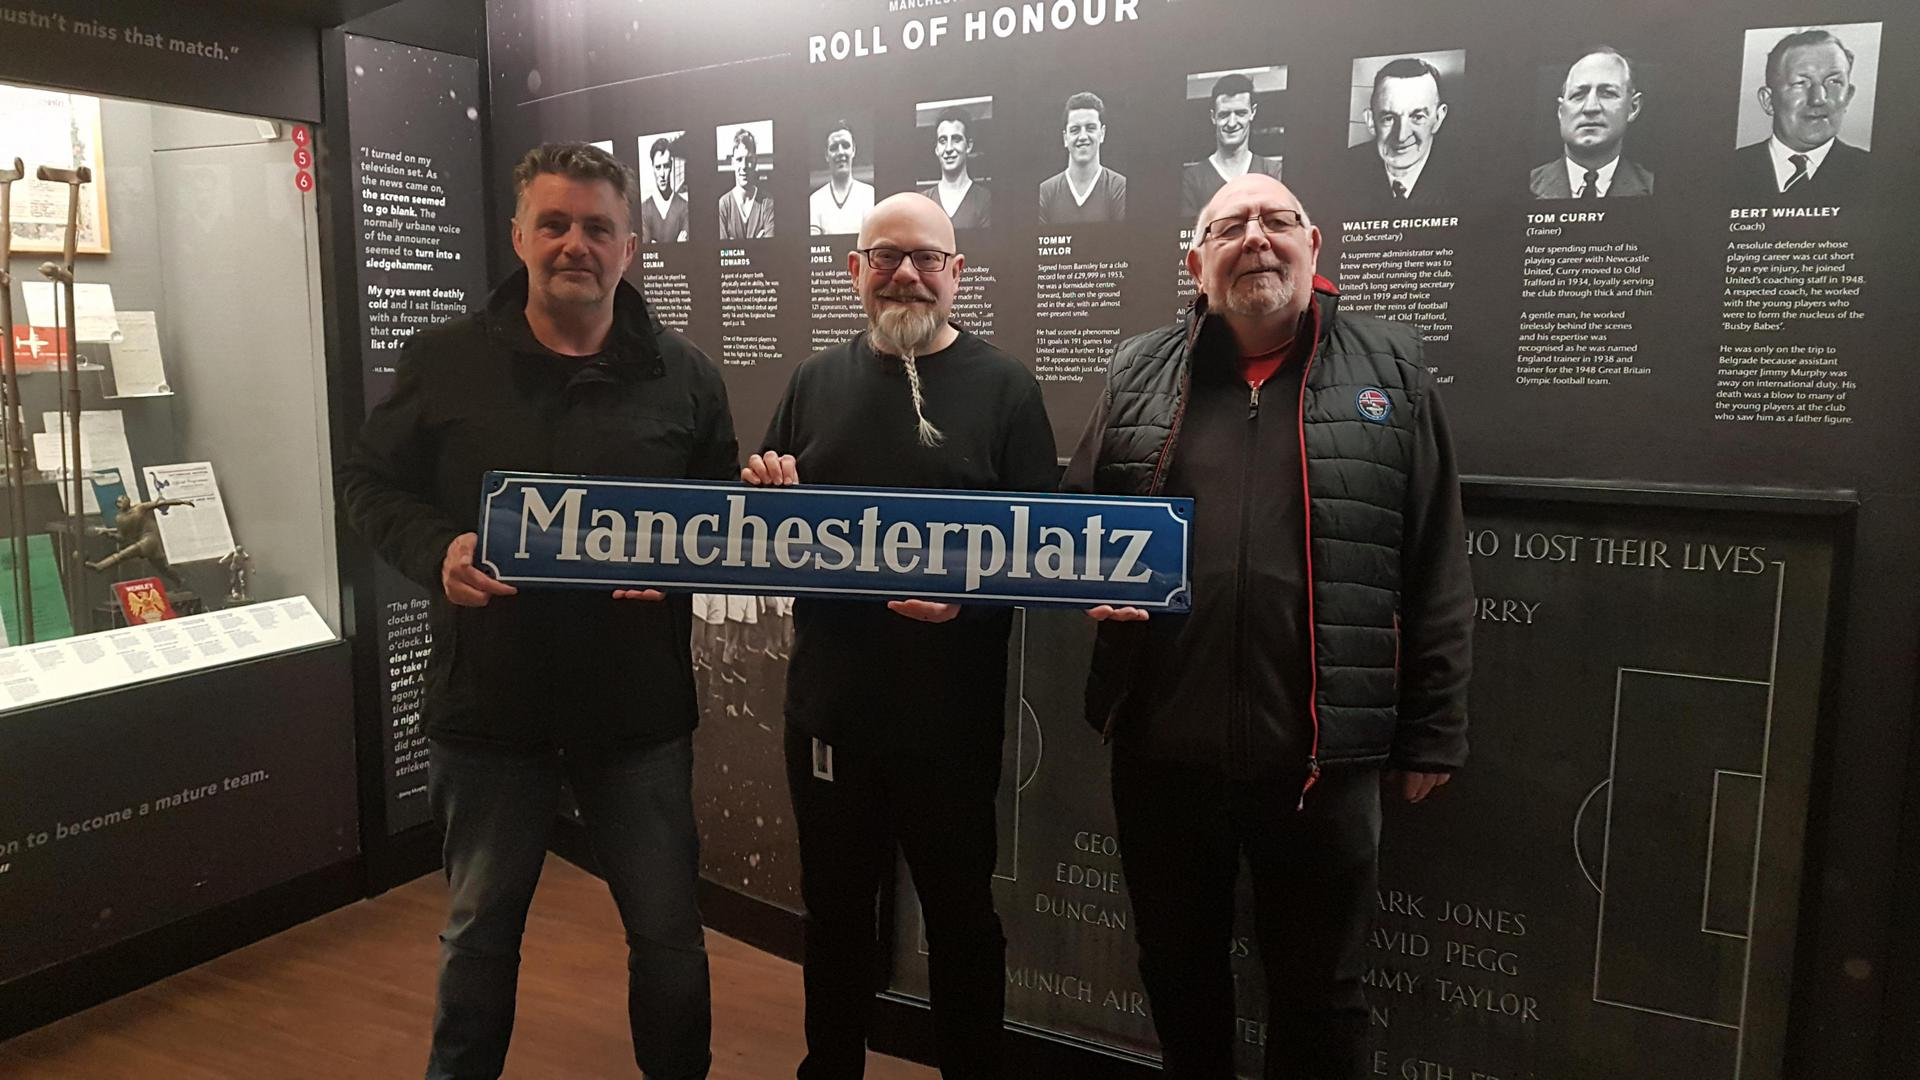 Mark Wylie receives the Manchesterplatz street sign from Munich in the club museum